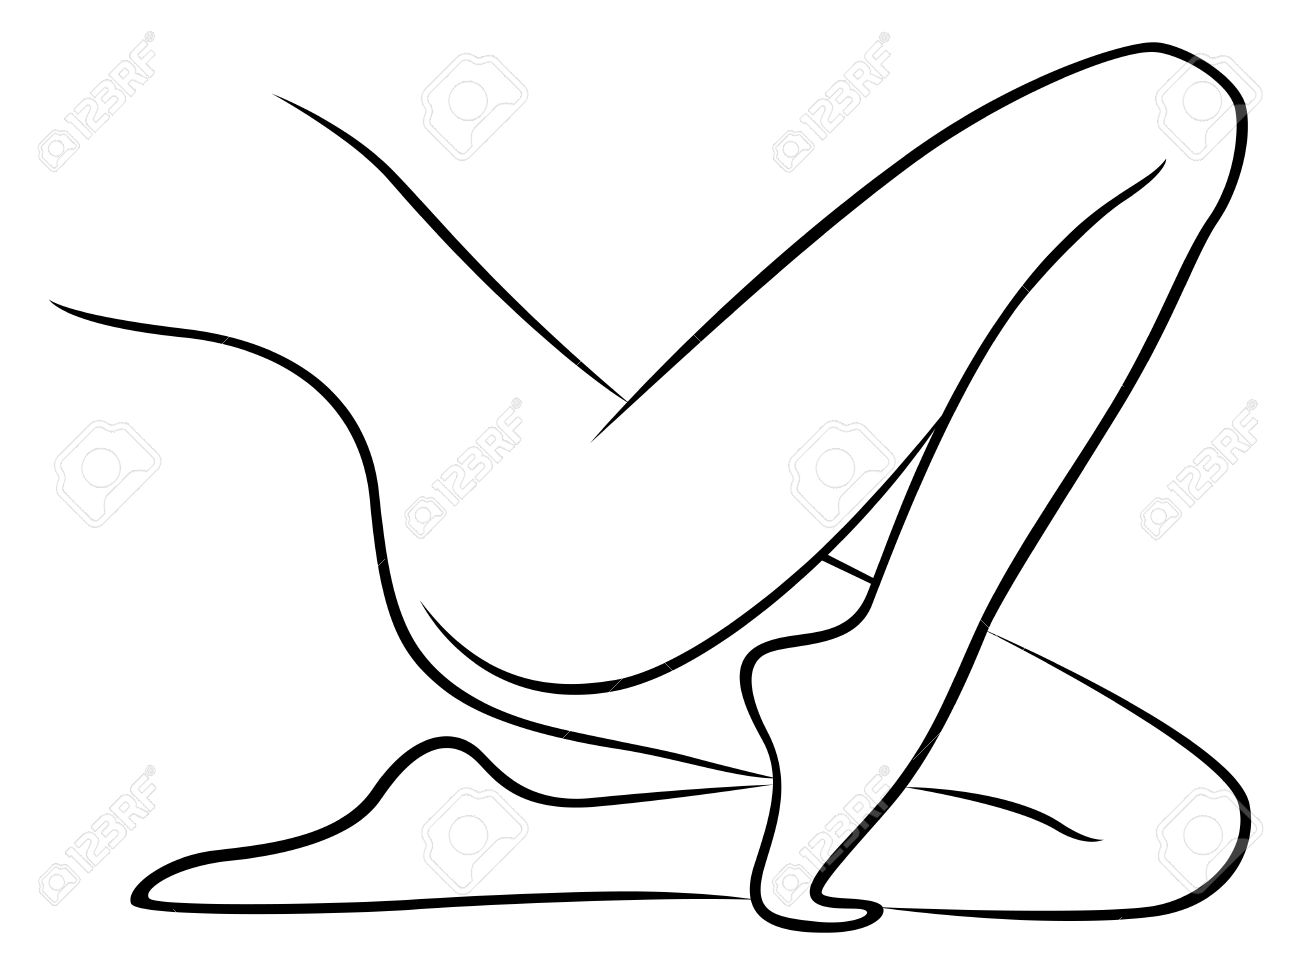 Lower Part Of Abstract Graceful Lying Female Body, Hand Drawing ...